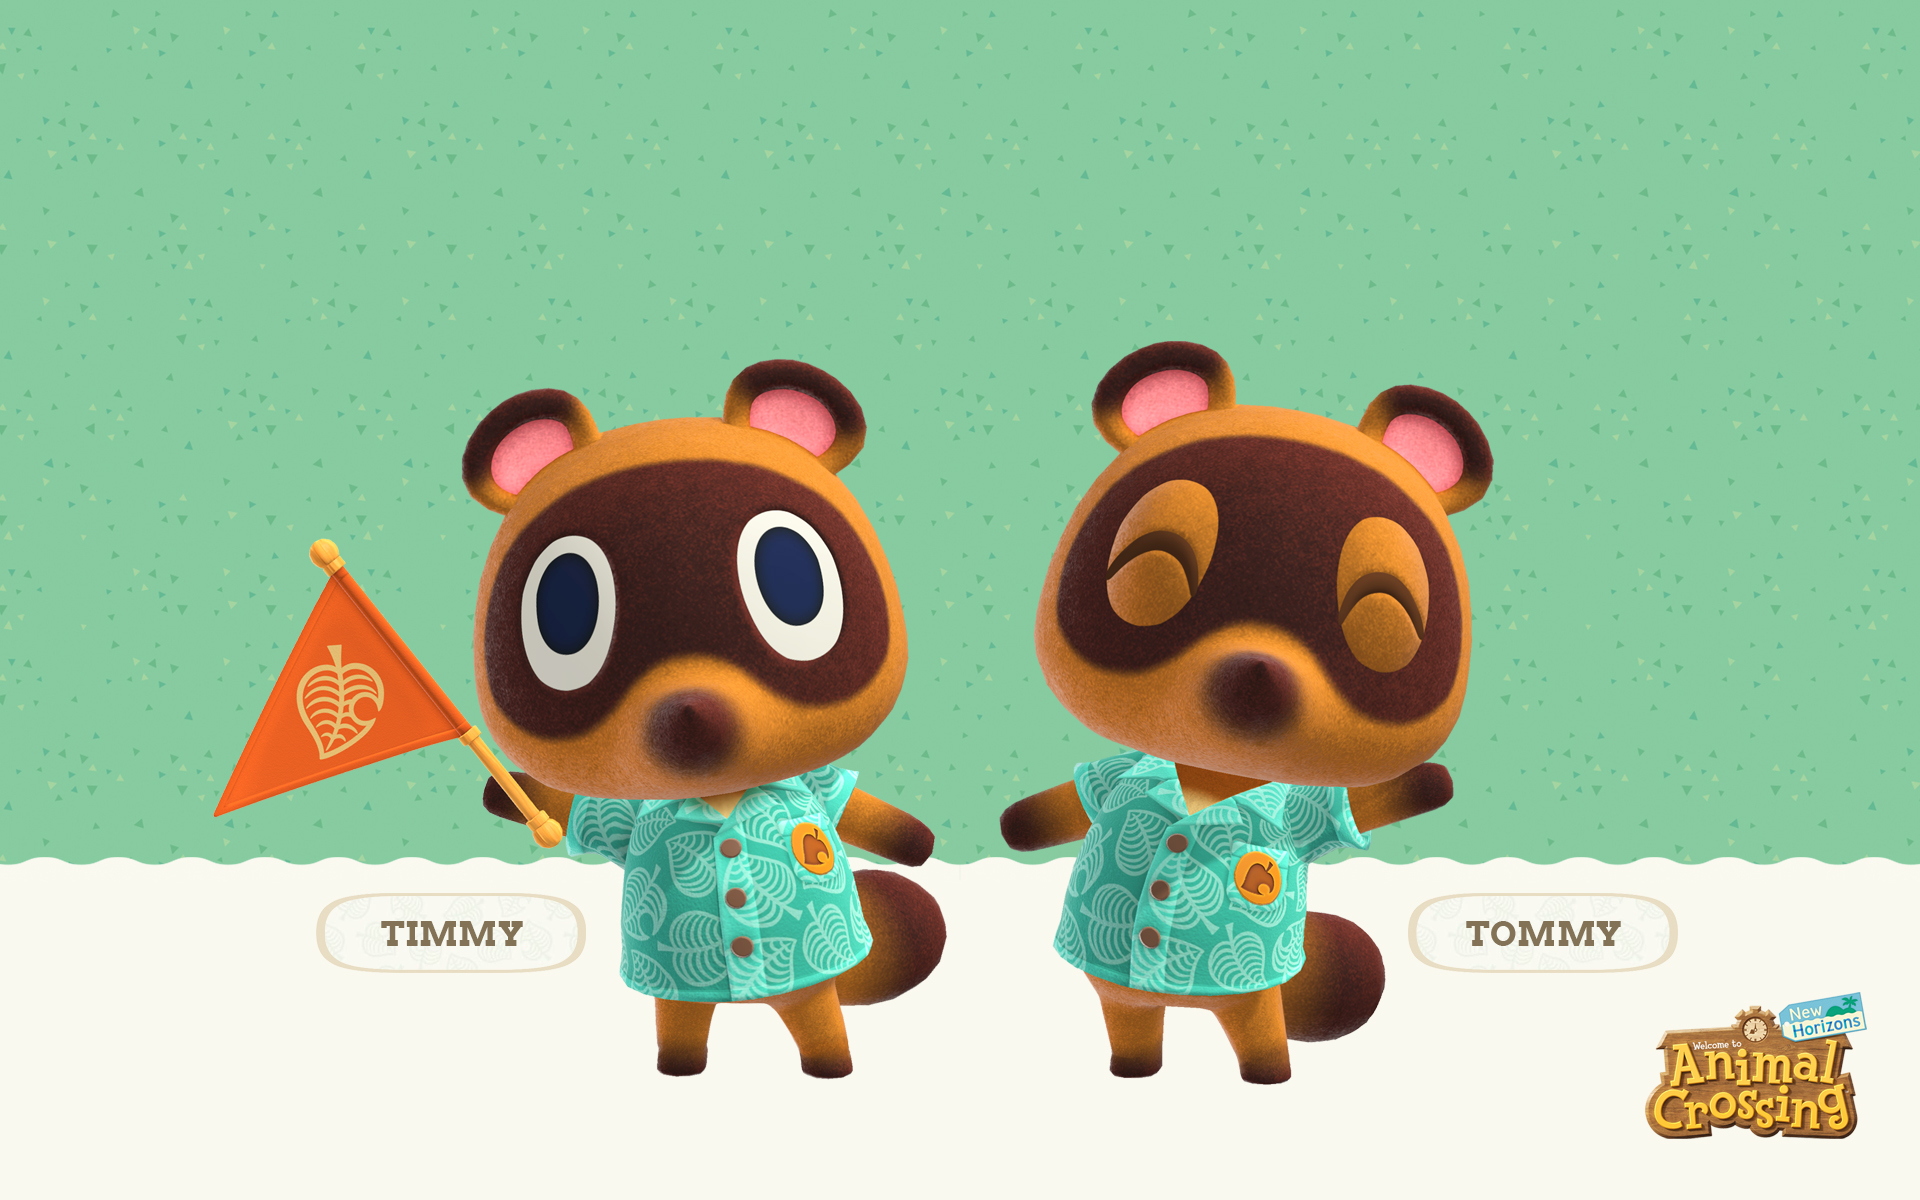 Animal Crossing New Horizons Timmy And Tommy Wallpaper Cat With